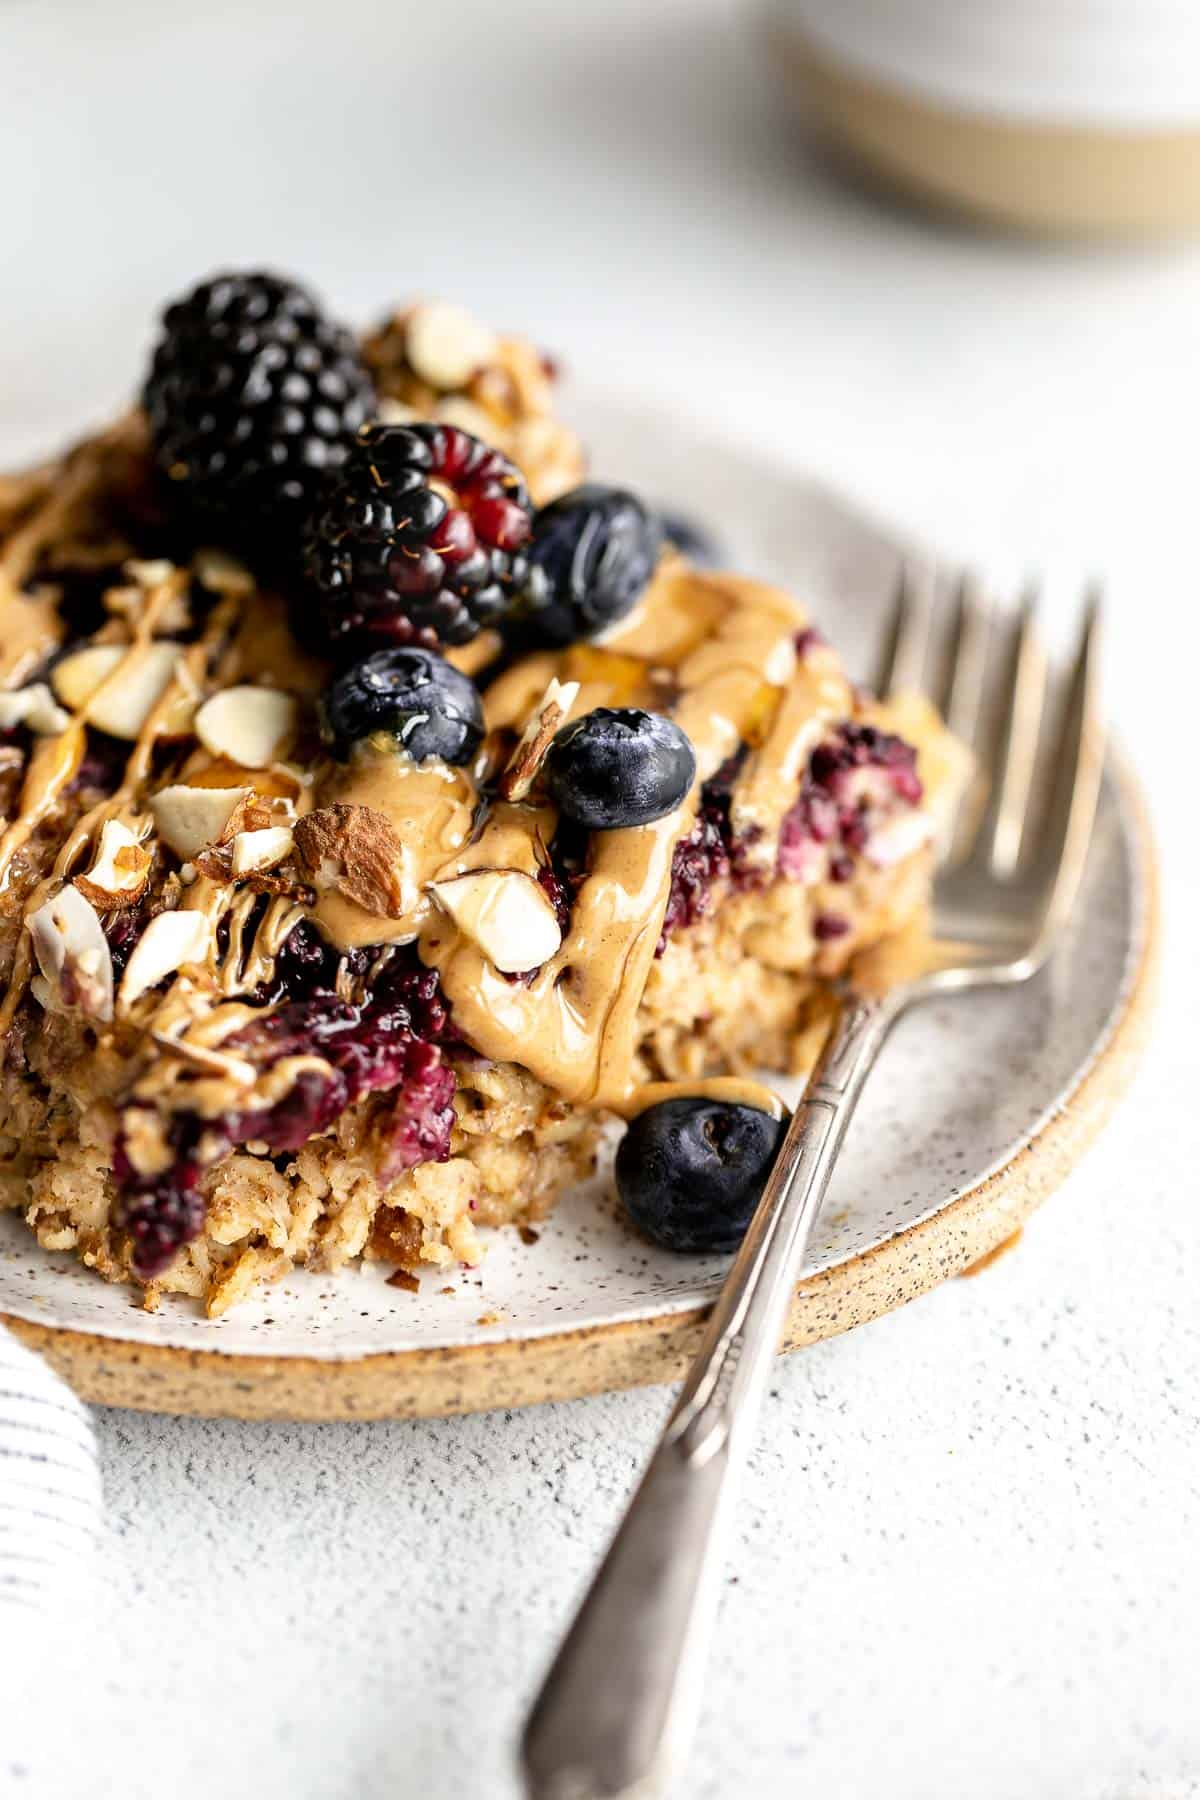 vegan baked oatmeal on a plate with a fork and peanut butter